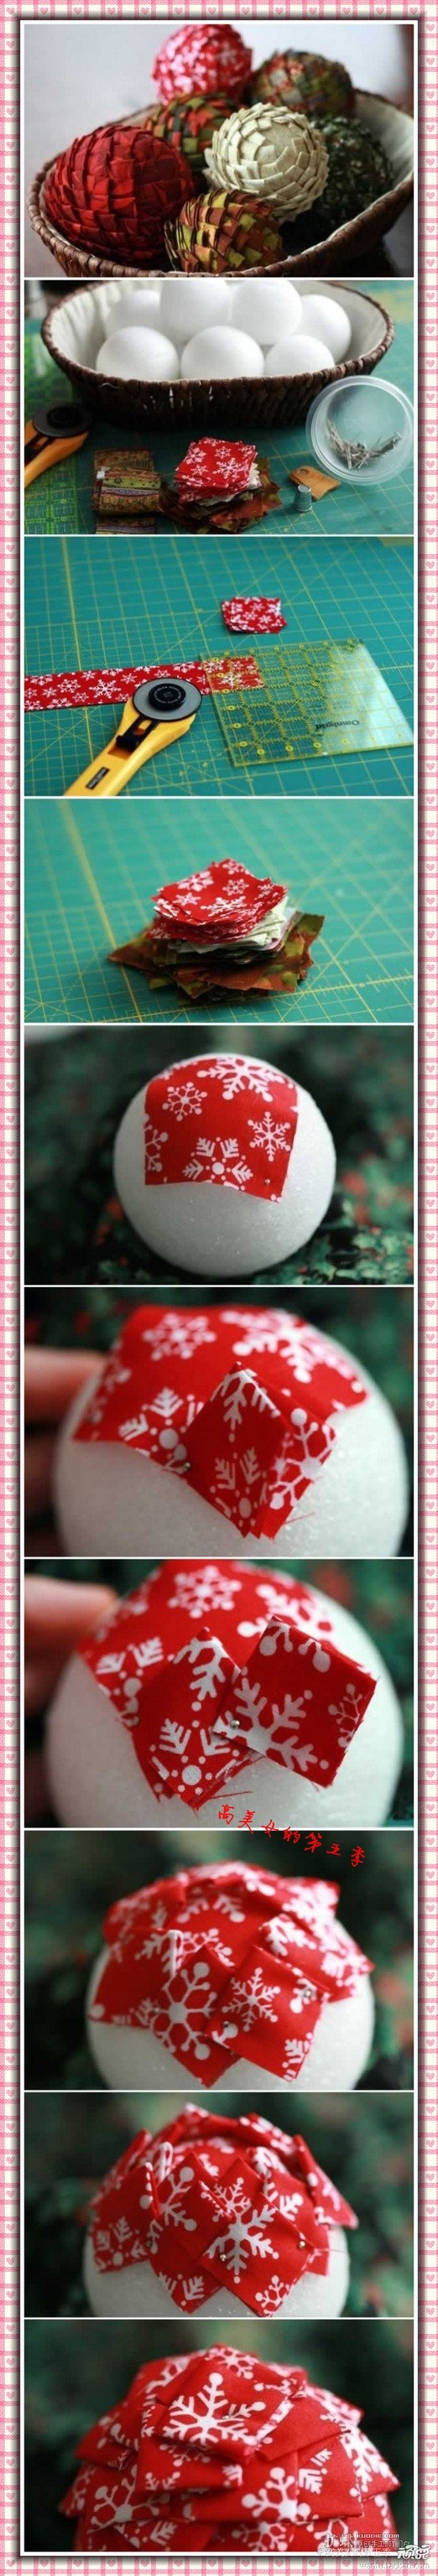 Fabric or paper covered polystyrene balls/ovals etc